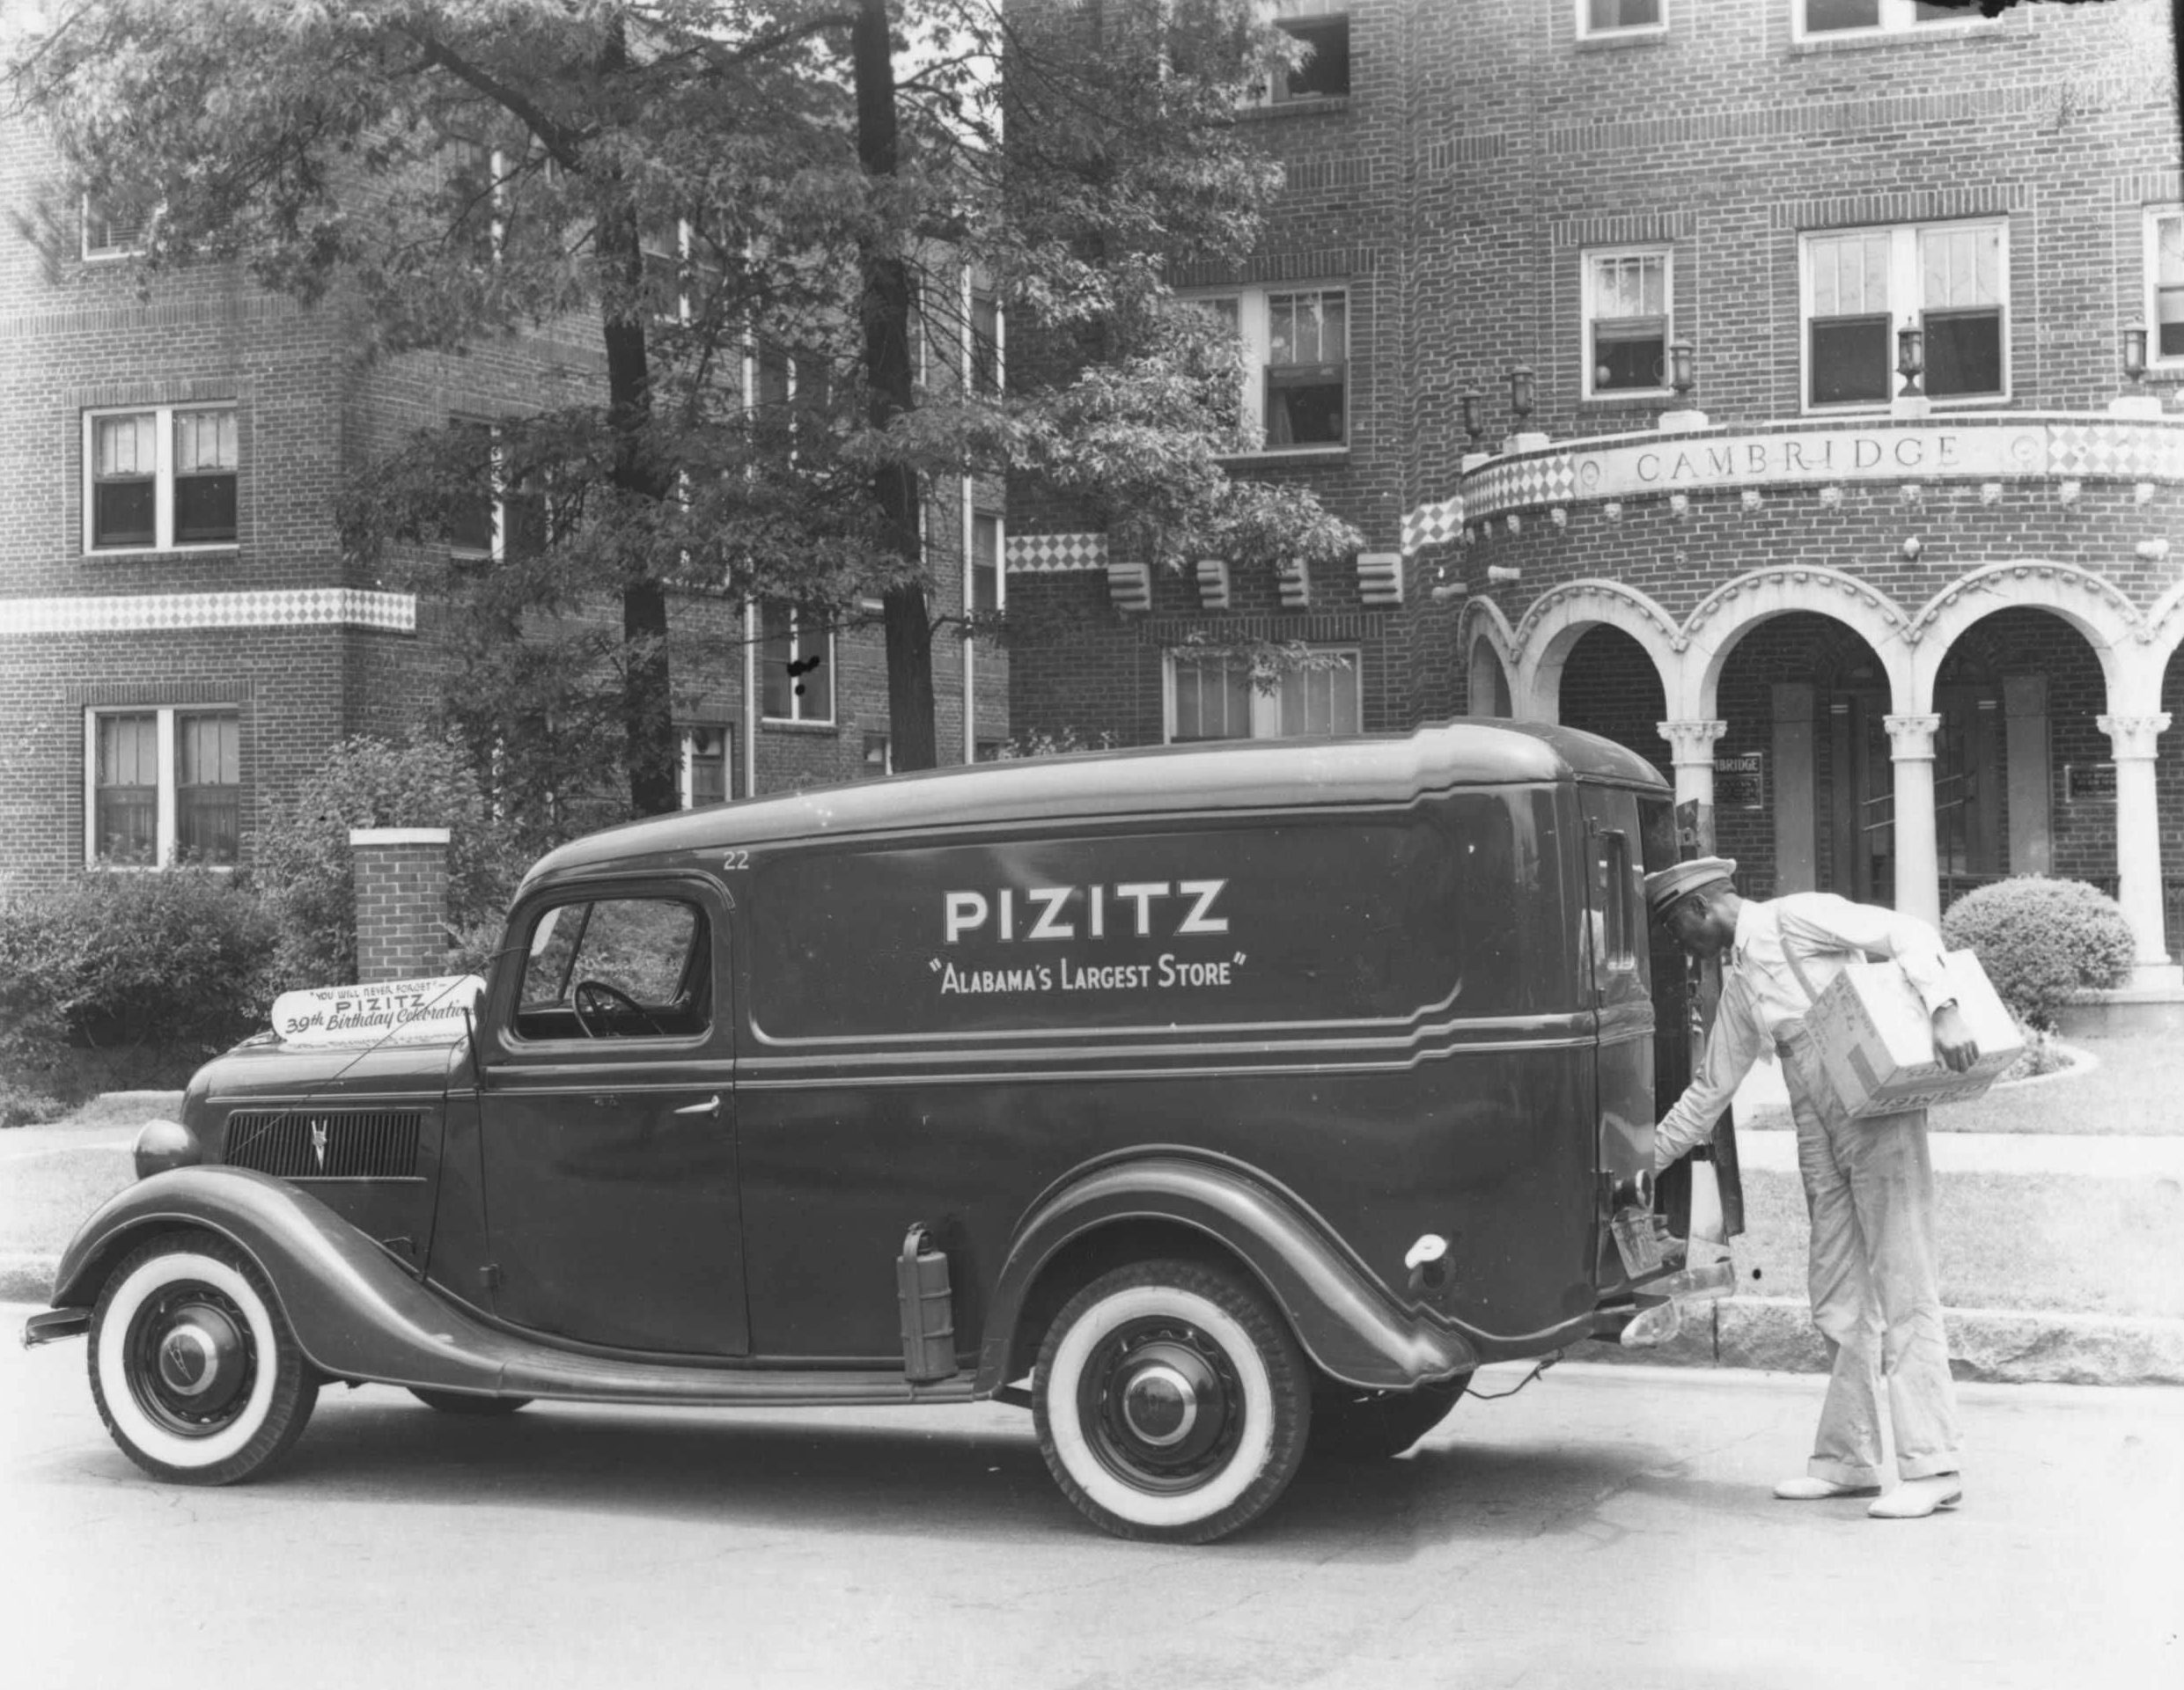 PATRON + Pizitz Department Stores – started by a man who arrived in America without a dollar in his pocket